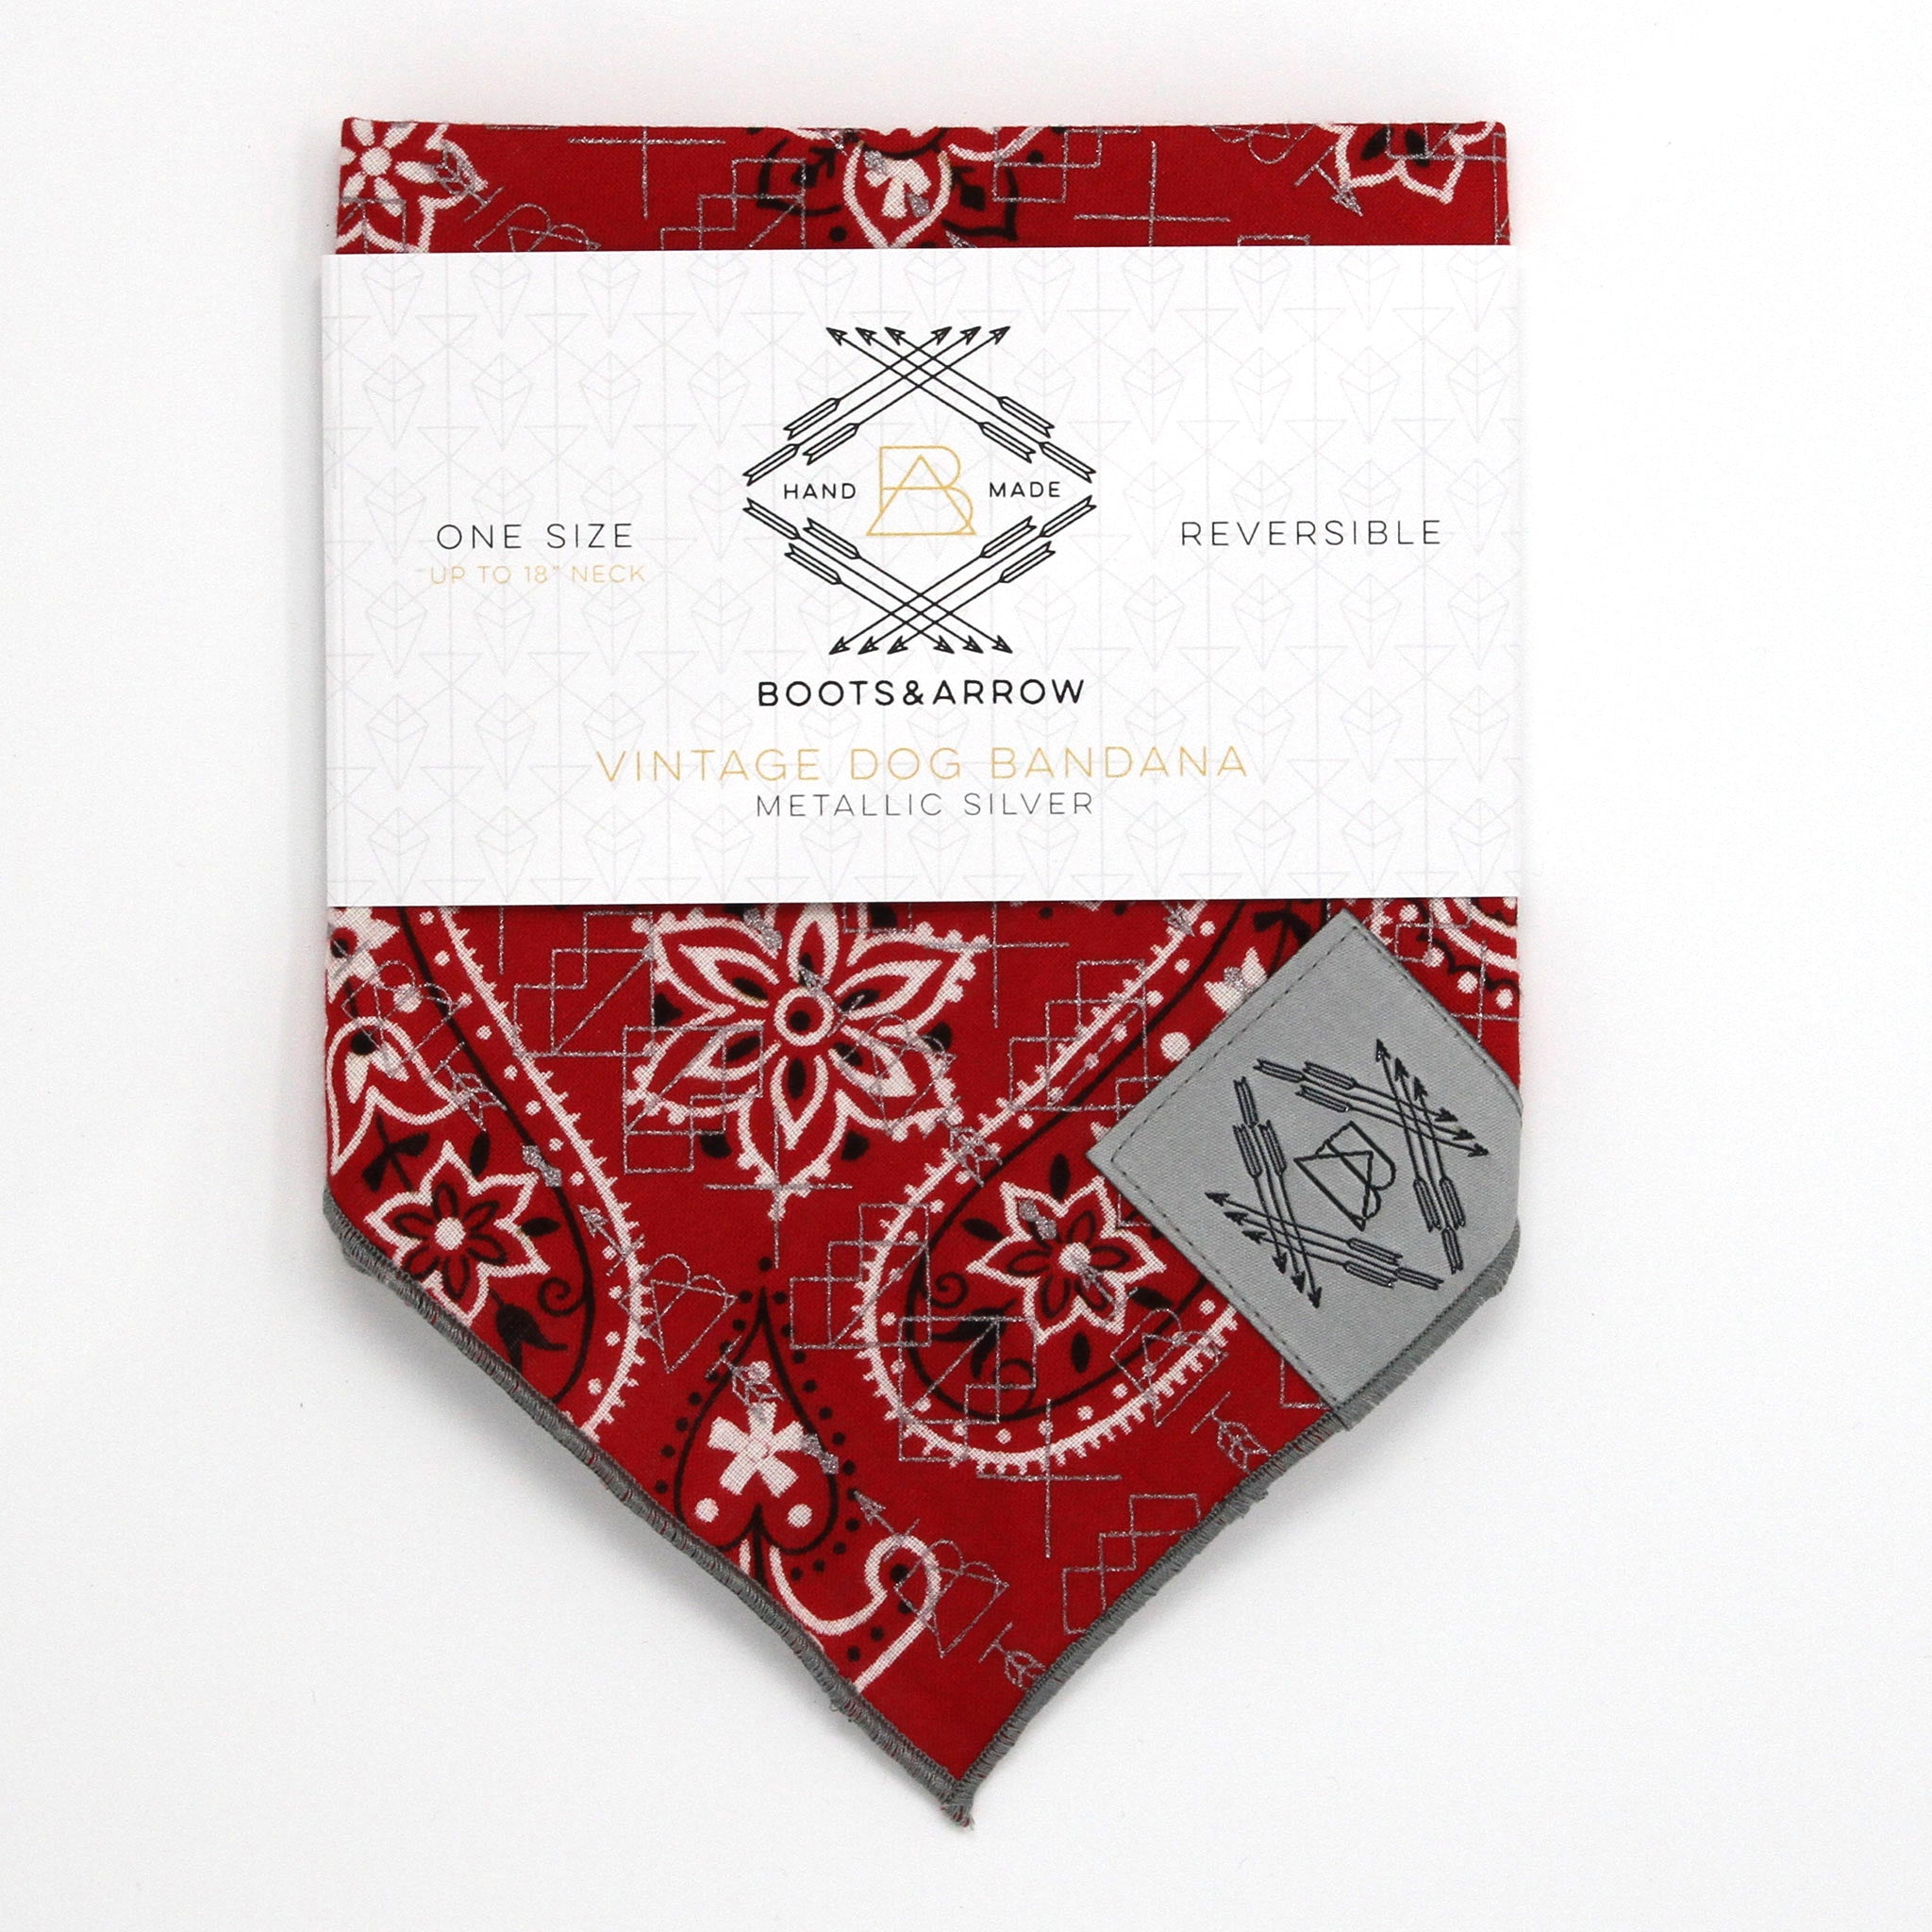 Classic Red Vintage Dog Bandana With Metallic Silver Screen Printing